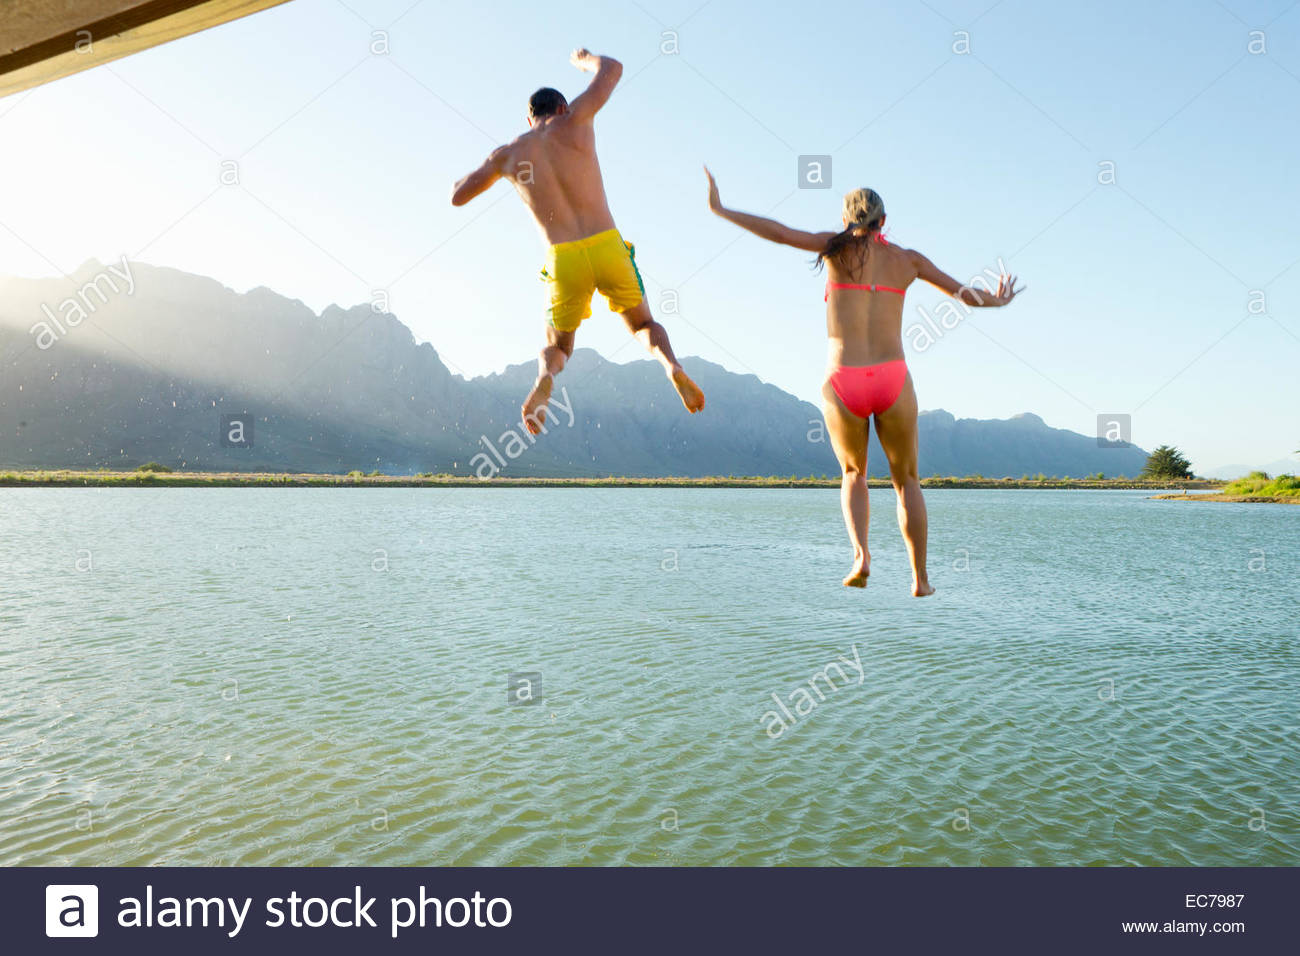 Couple in swimwear, jumping into a lake from a jetty - Stock Image